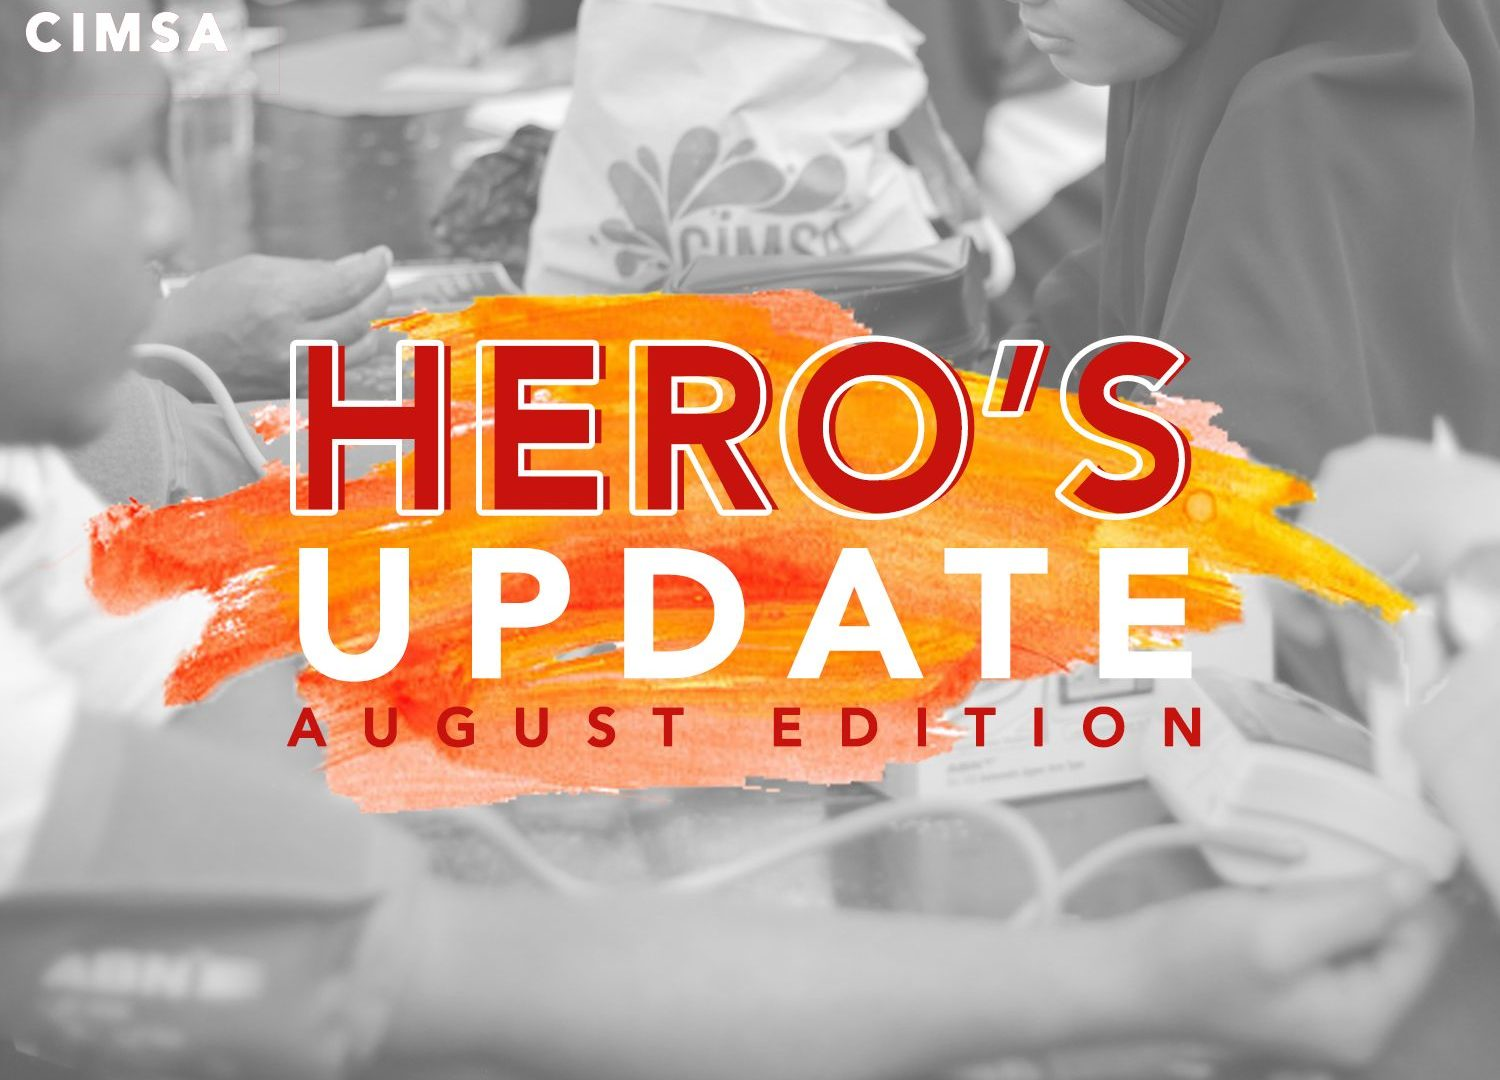 HERO'S UPDATE : August Edition